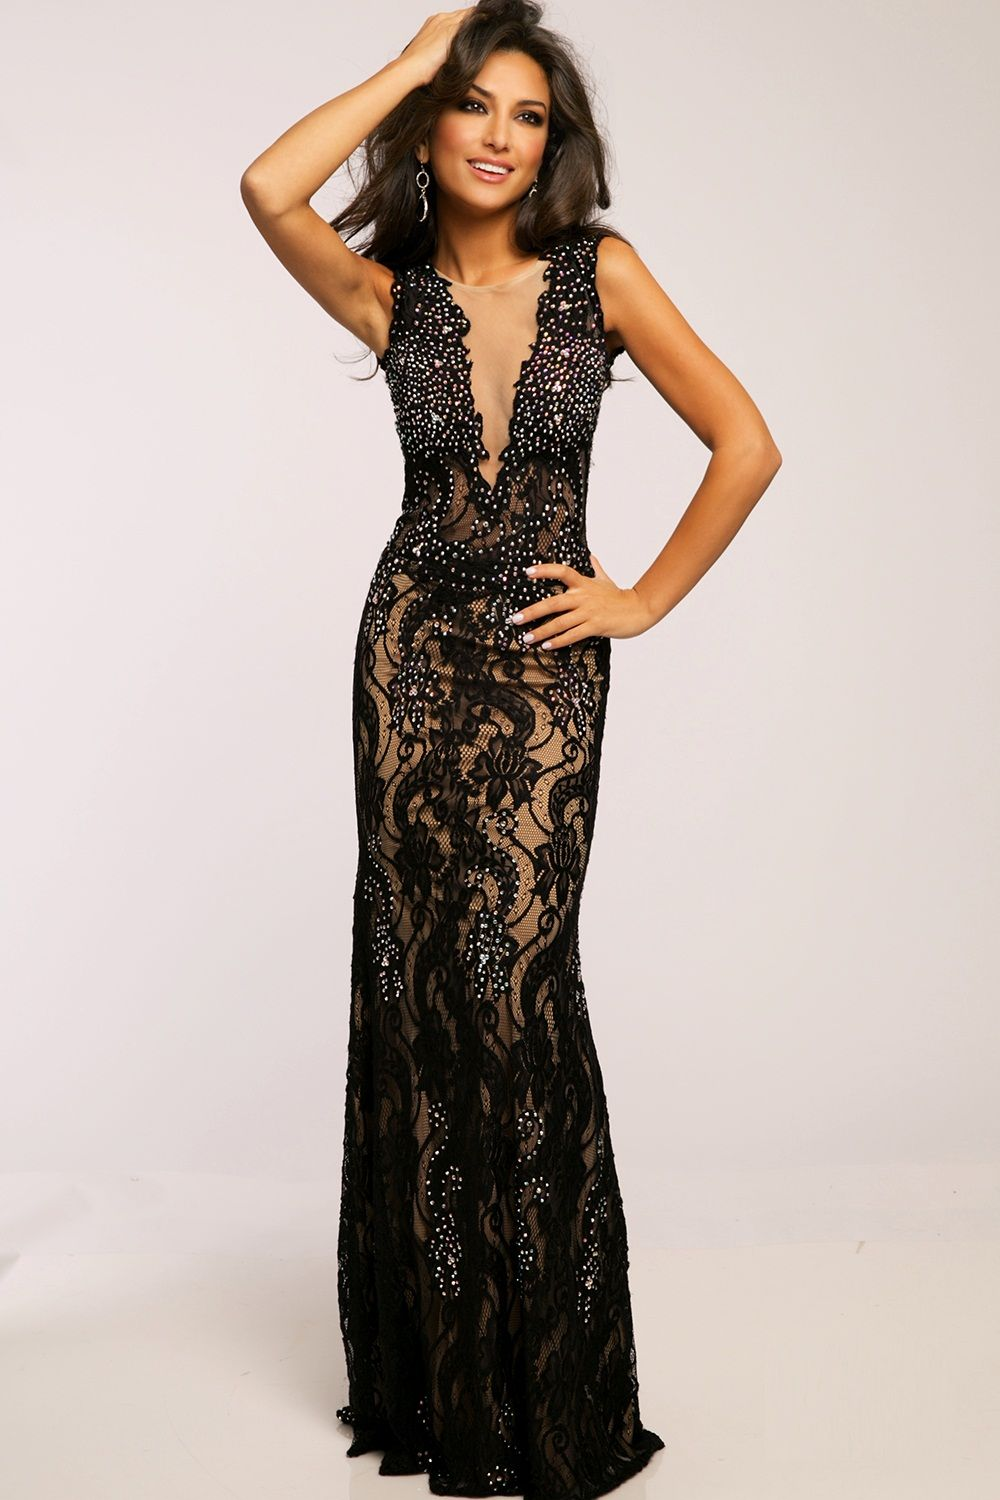 Drop dead black prom dresses u looking your best for prom